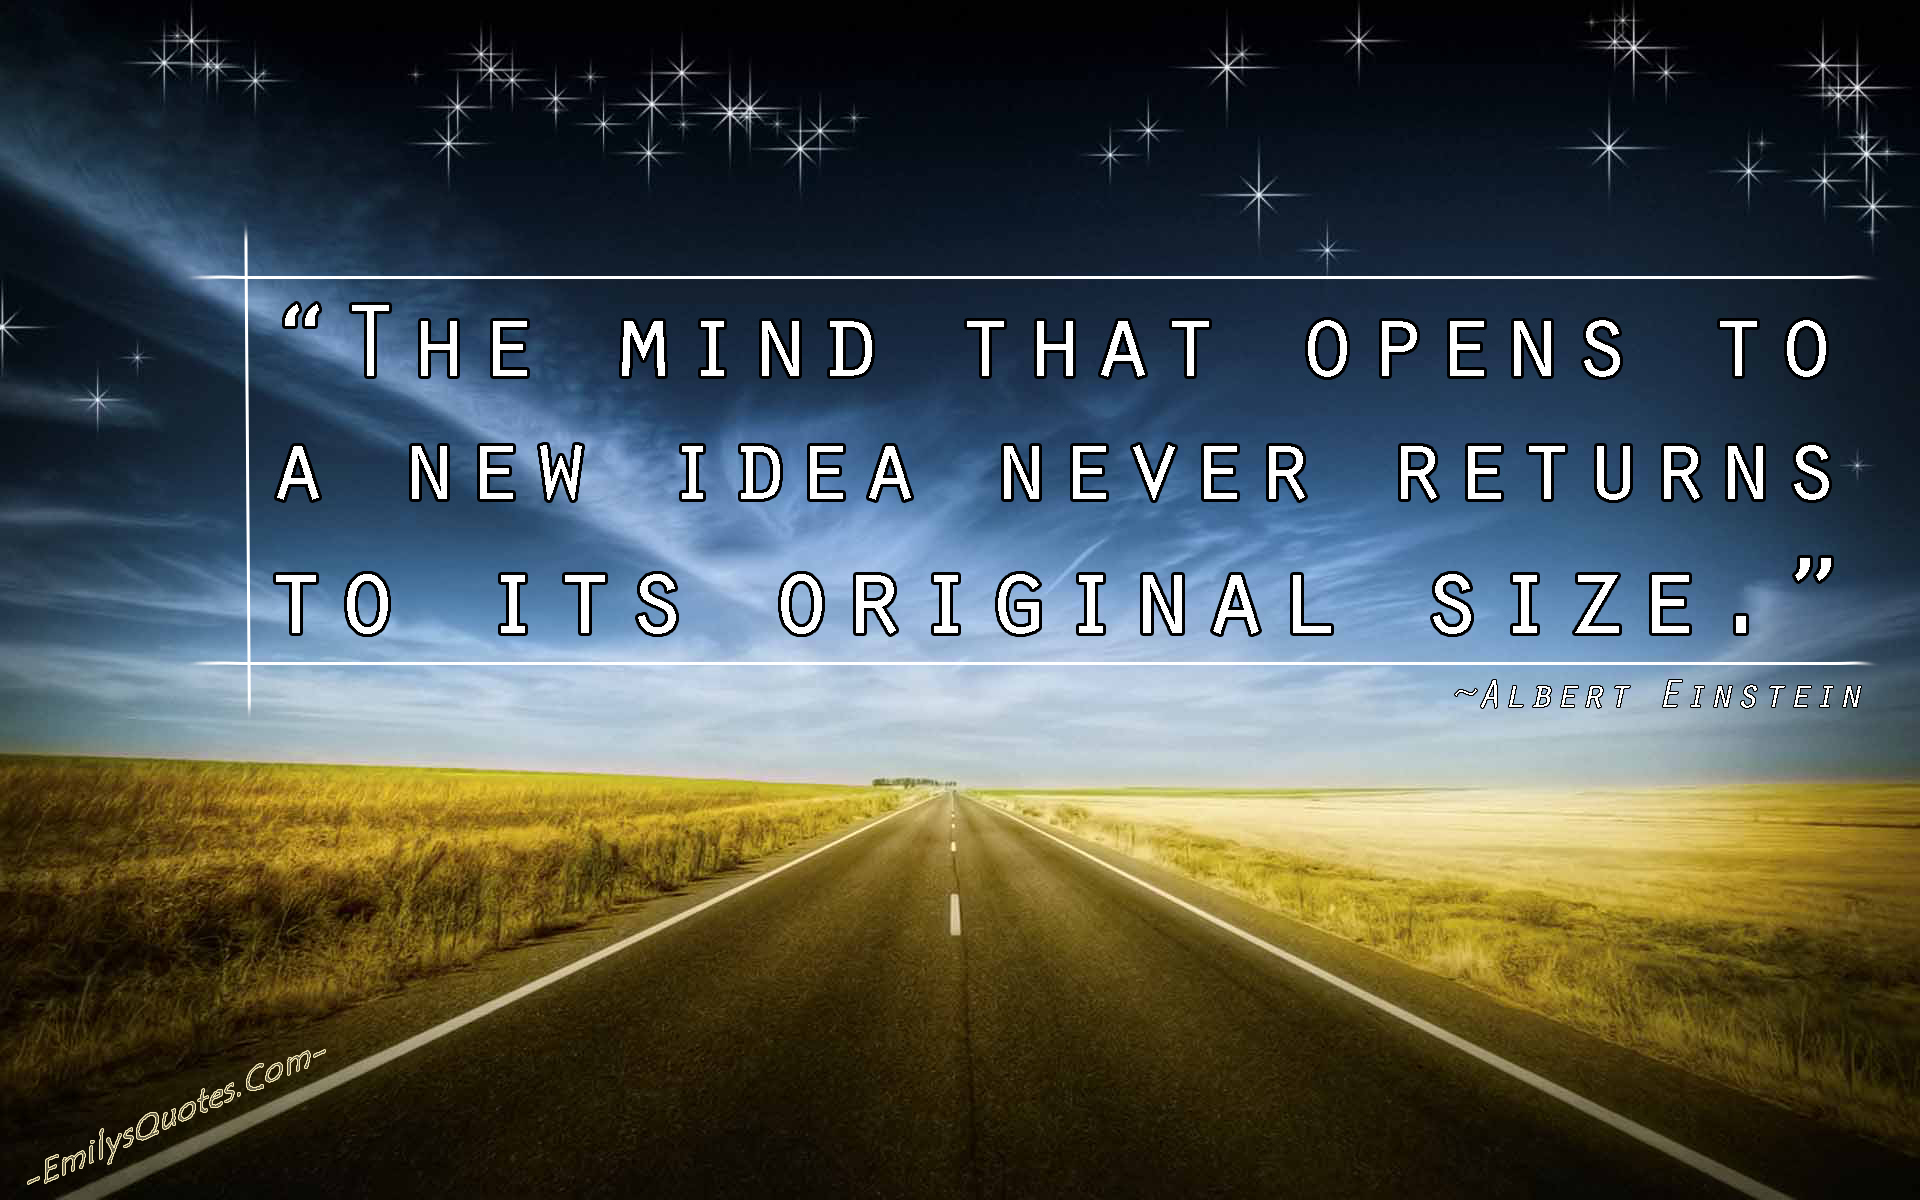 Idea Quotes: The Mind That Opens To A New Idea Never Returns To Its